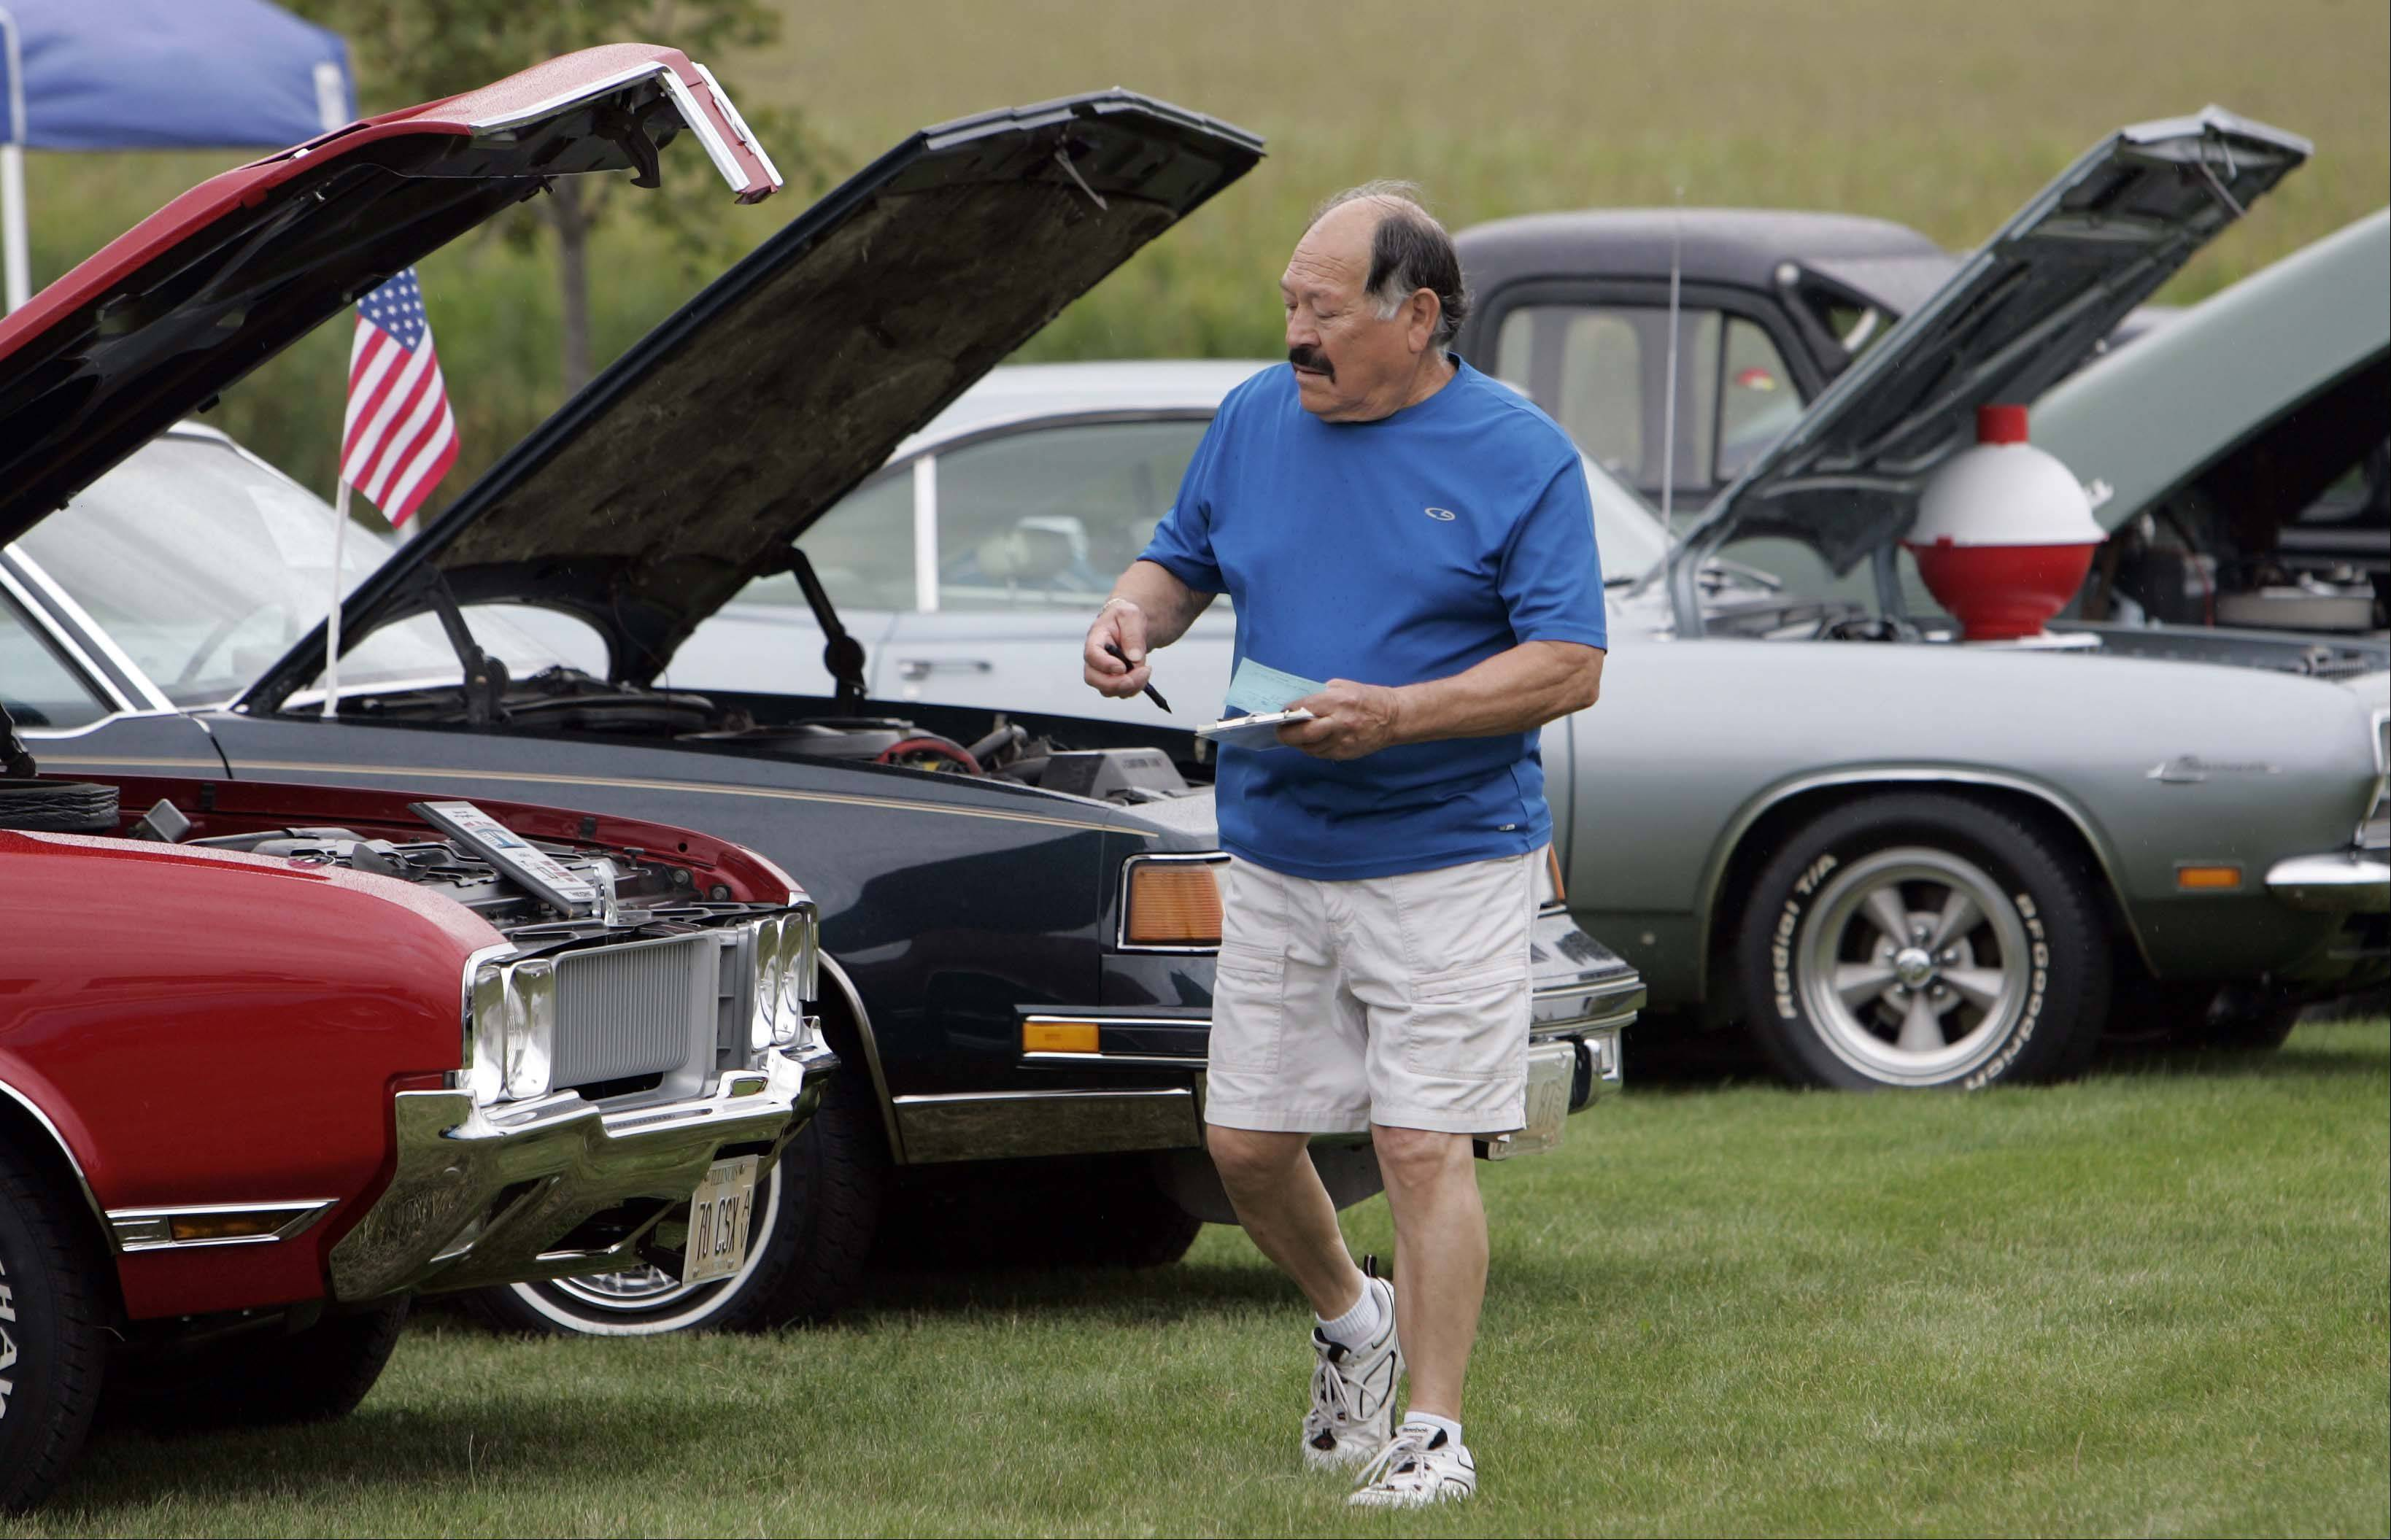 Lee Gomez of St. Charles gets a look at some of the cars during Kane County Sheriff Pat Perez�s sixth annual charity car and motorcycle show last year in Elburn. Gomez was showing his own six-cylinder 1965 Chevrolet Impala.